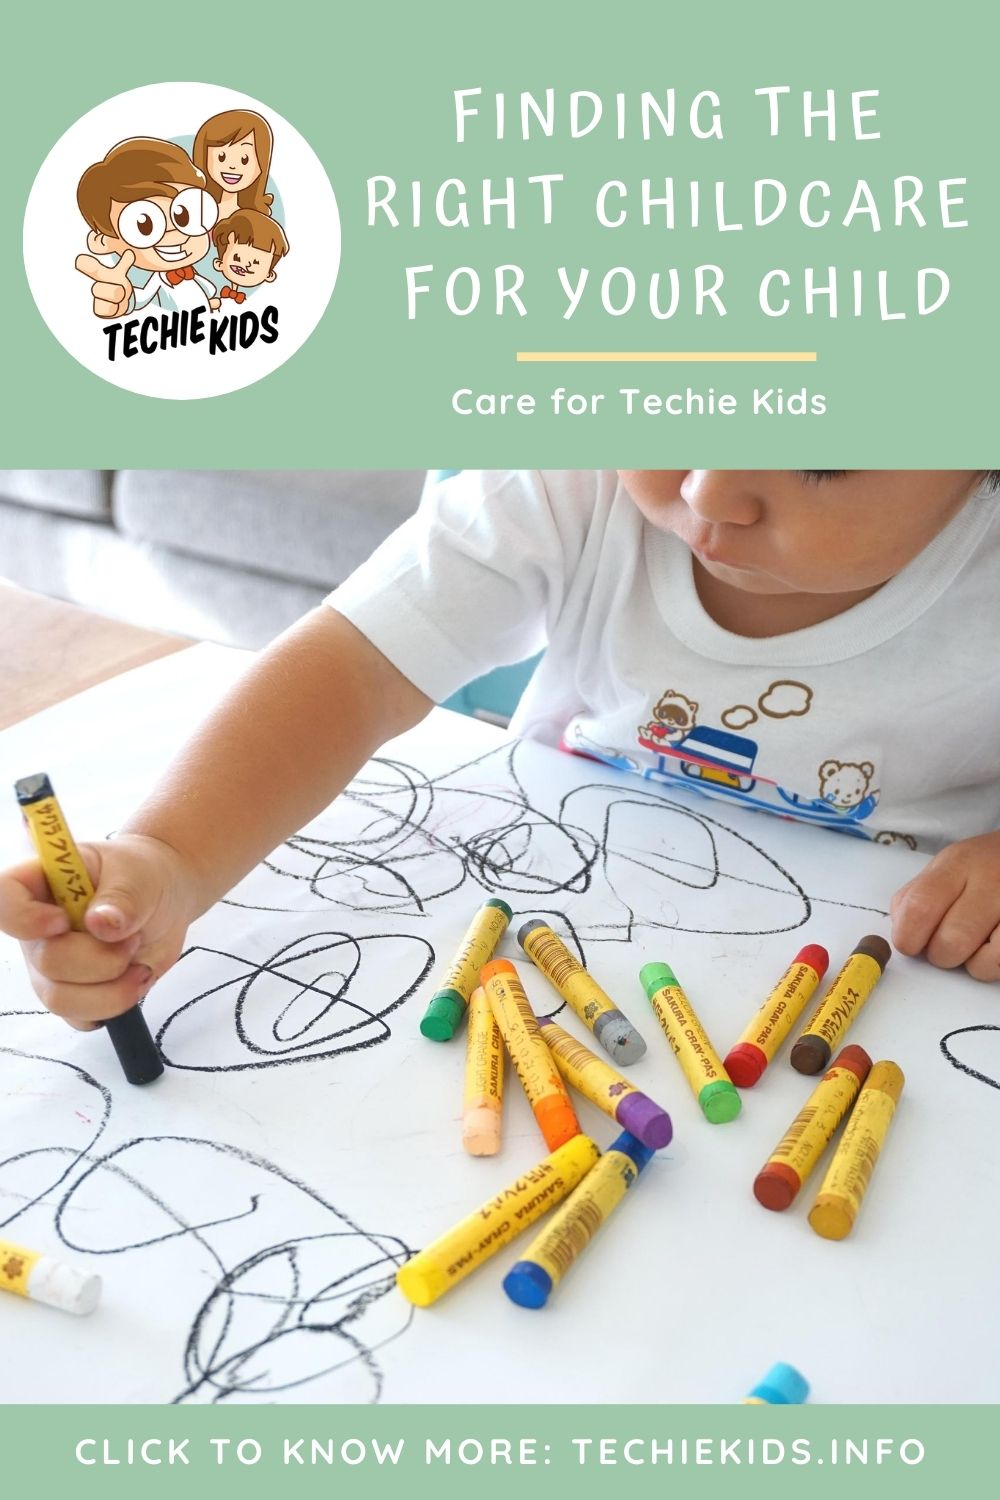 Finding the Right Childcare for Your Child